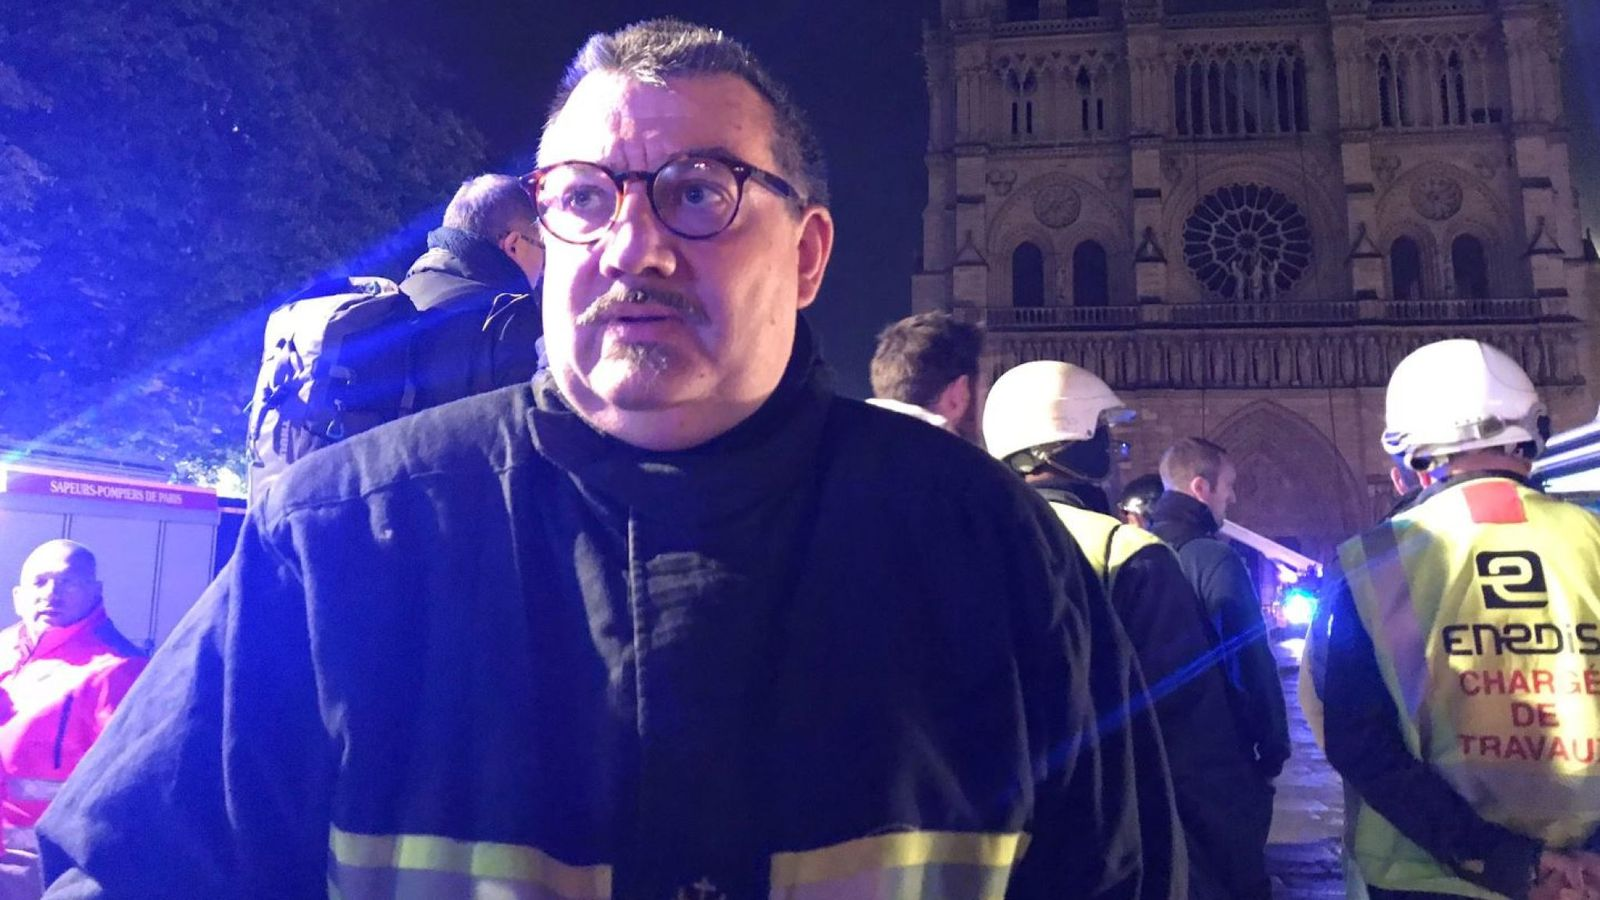 Brave Chaplain Runs Into Burning Notre-Dame to Save Priceless Relics